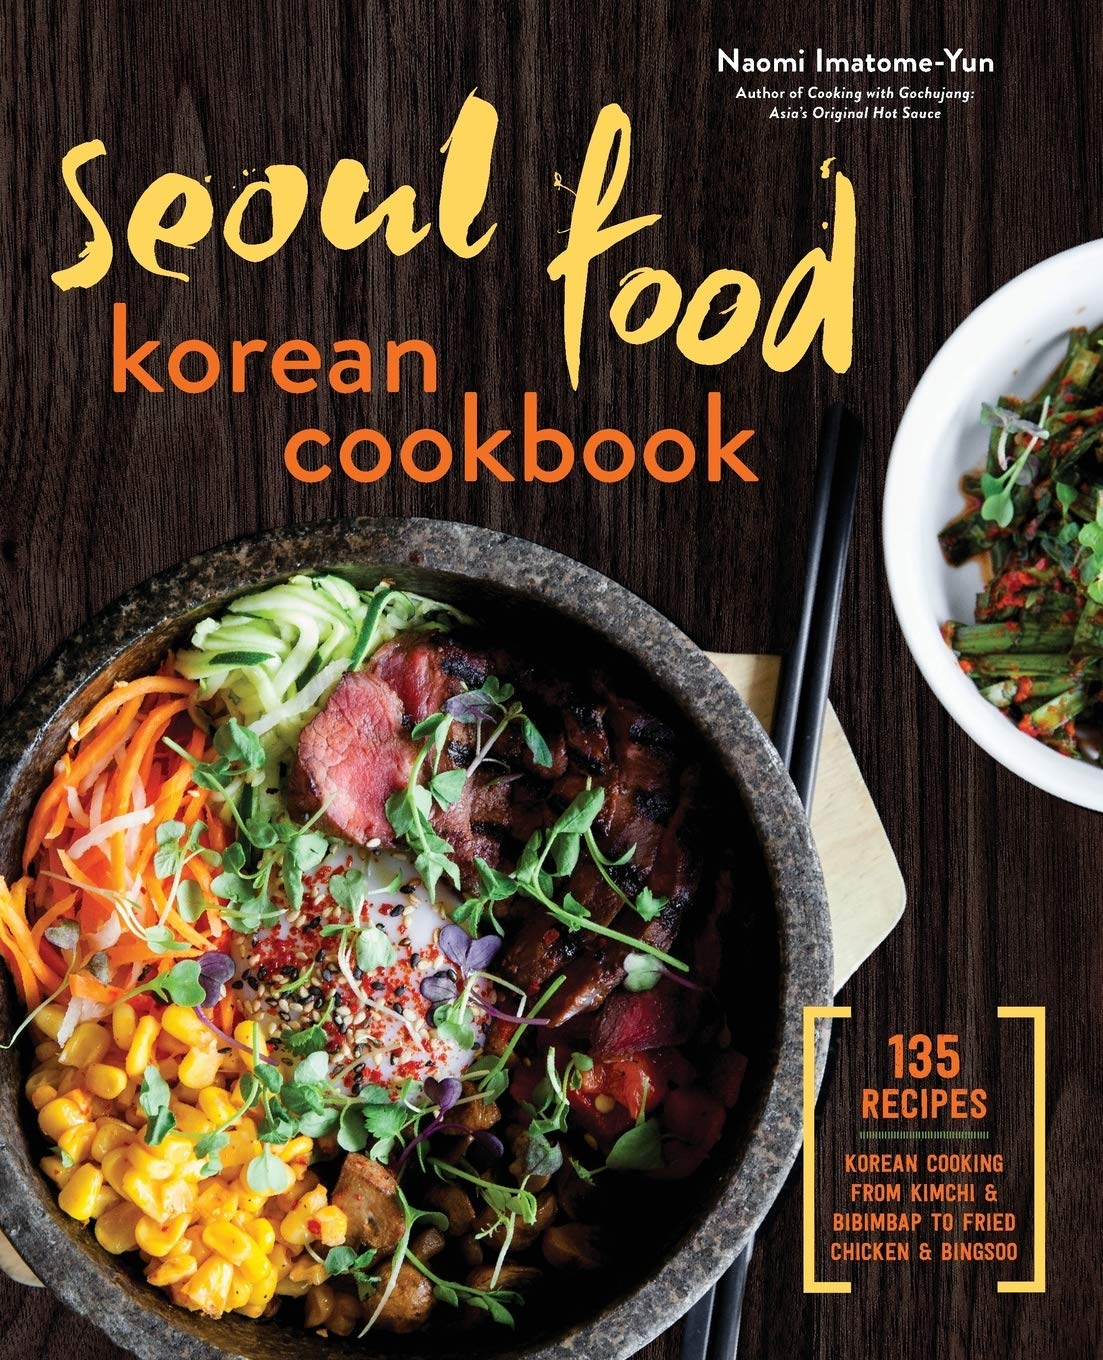 Seoul Food Korean Cookbook Korean Cooking From Kimchi And Bibimbap To Fried Chicken And Bingsoo Imatome Yun Naomi 9781623156510 Amazon Com Books